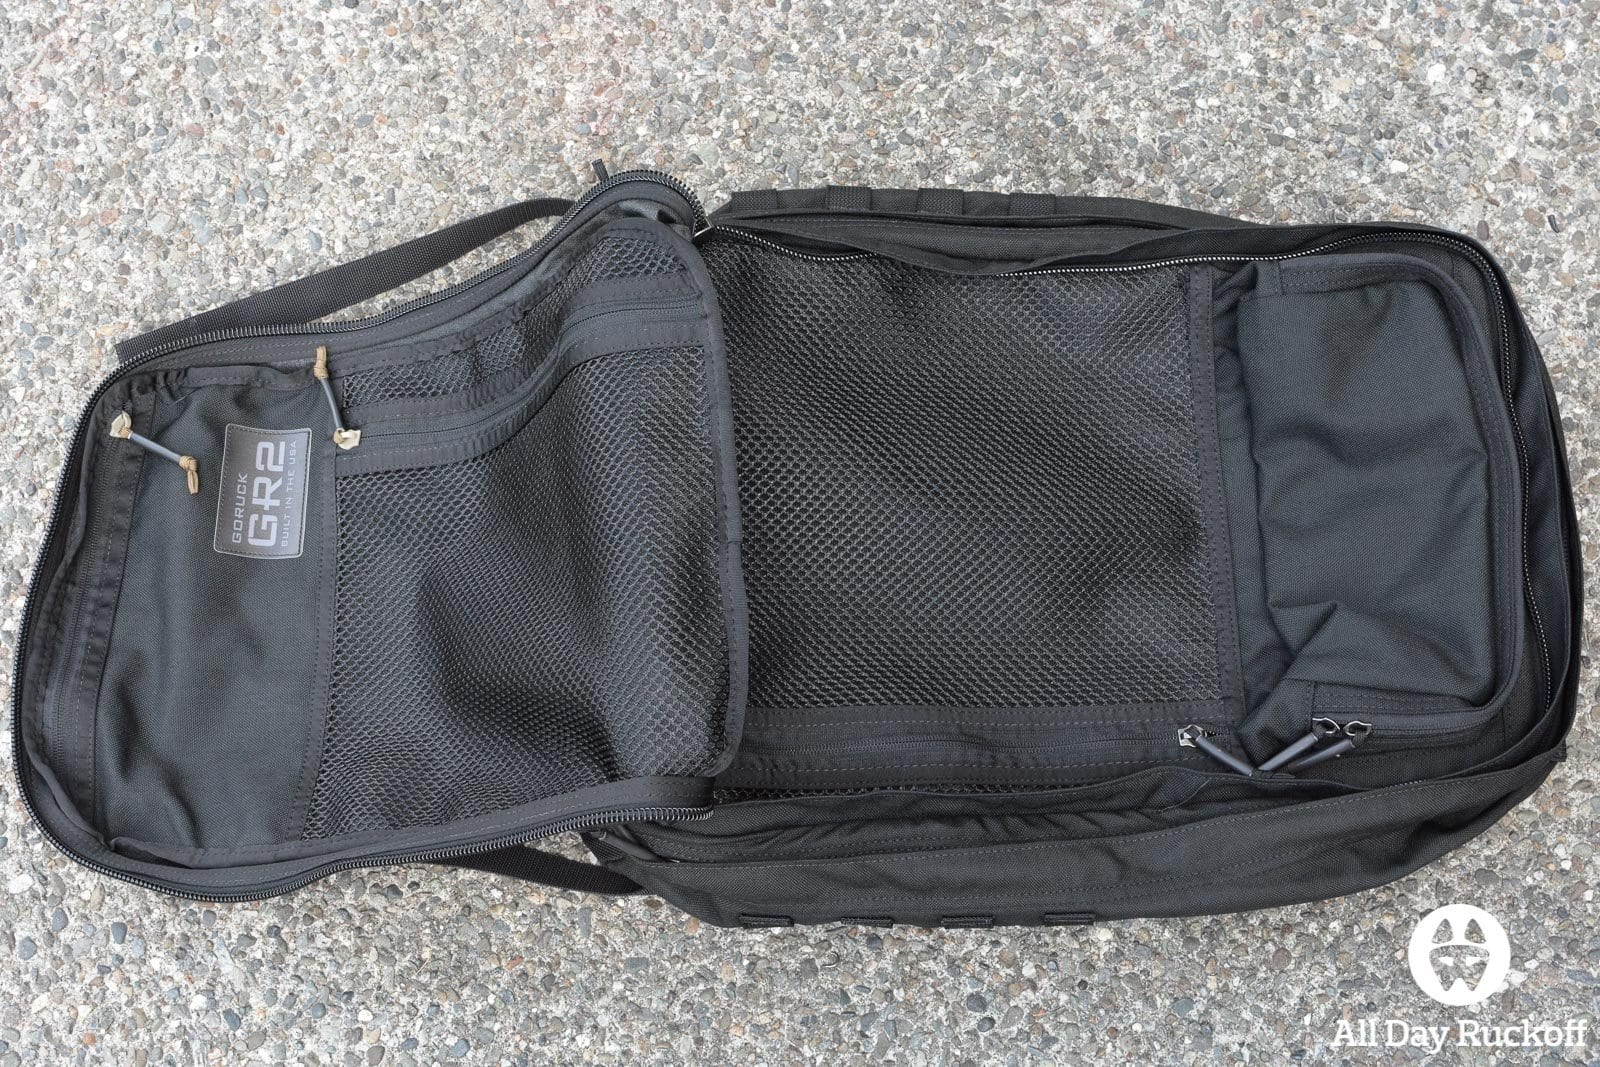 GORUCK GR2 34L - Second Inside